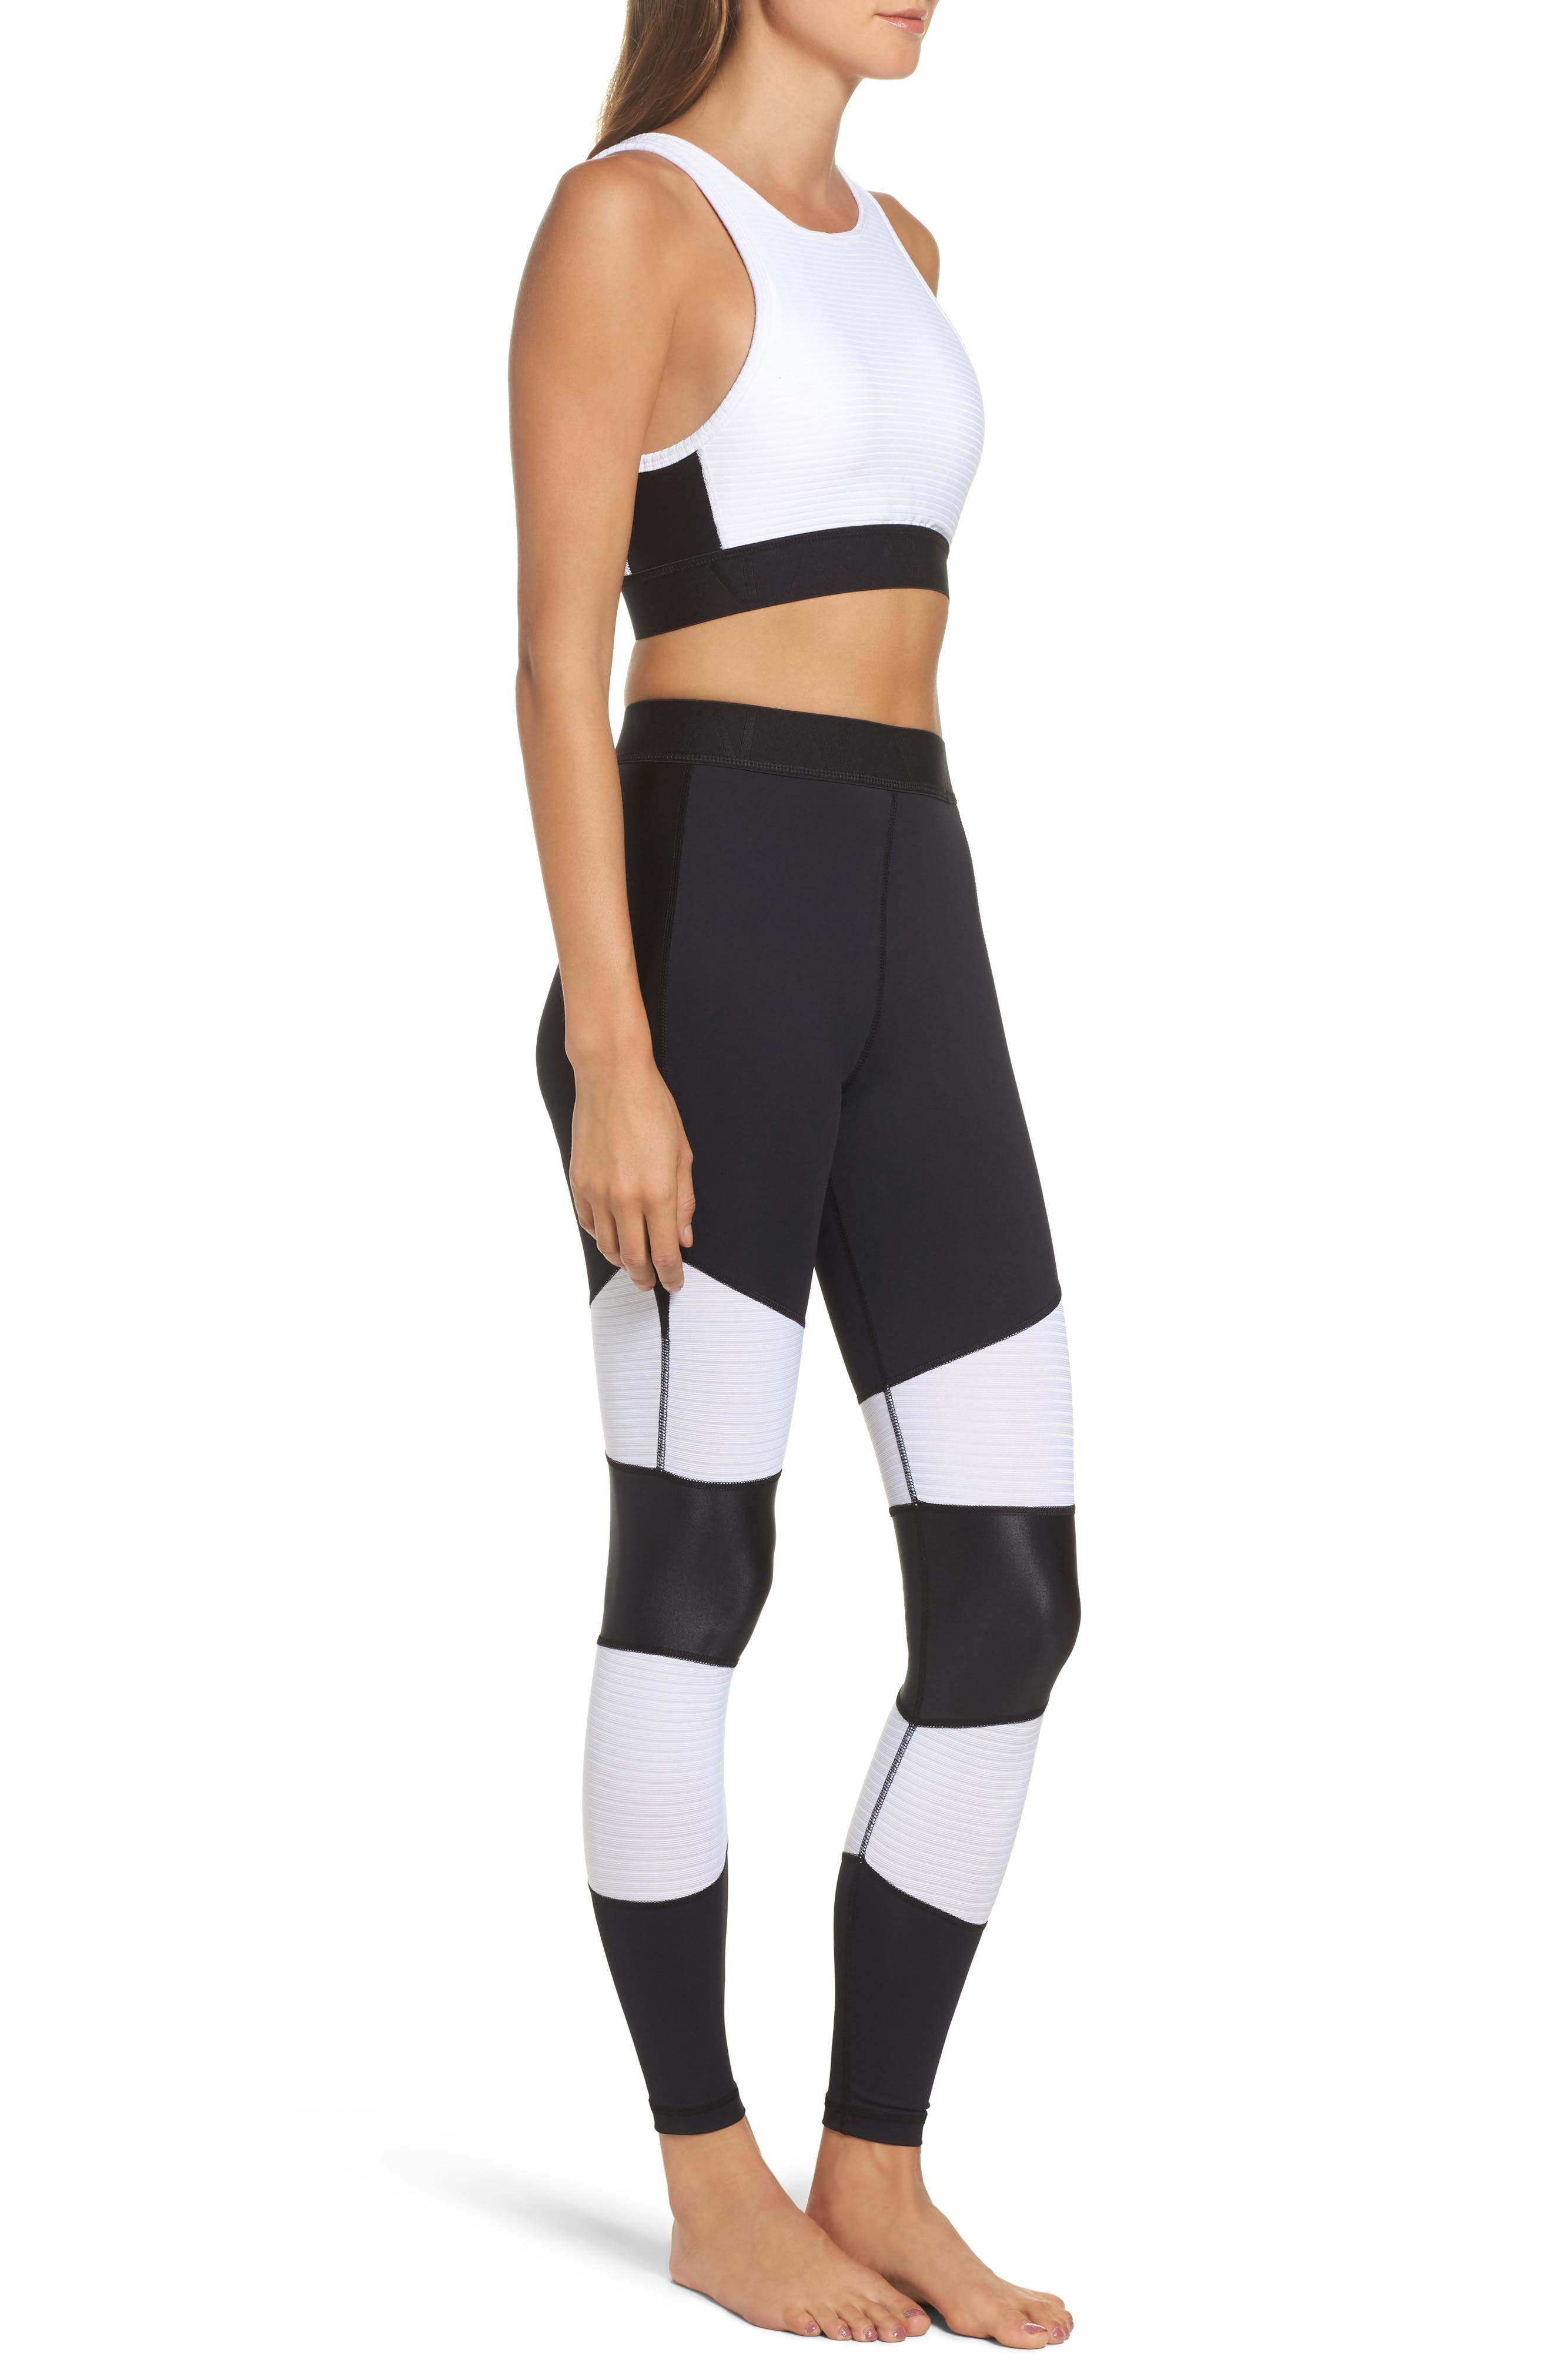 Harley Tights,                             Alternate thumbnail 10, color,                             White